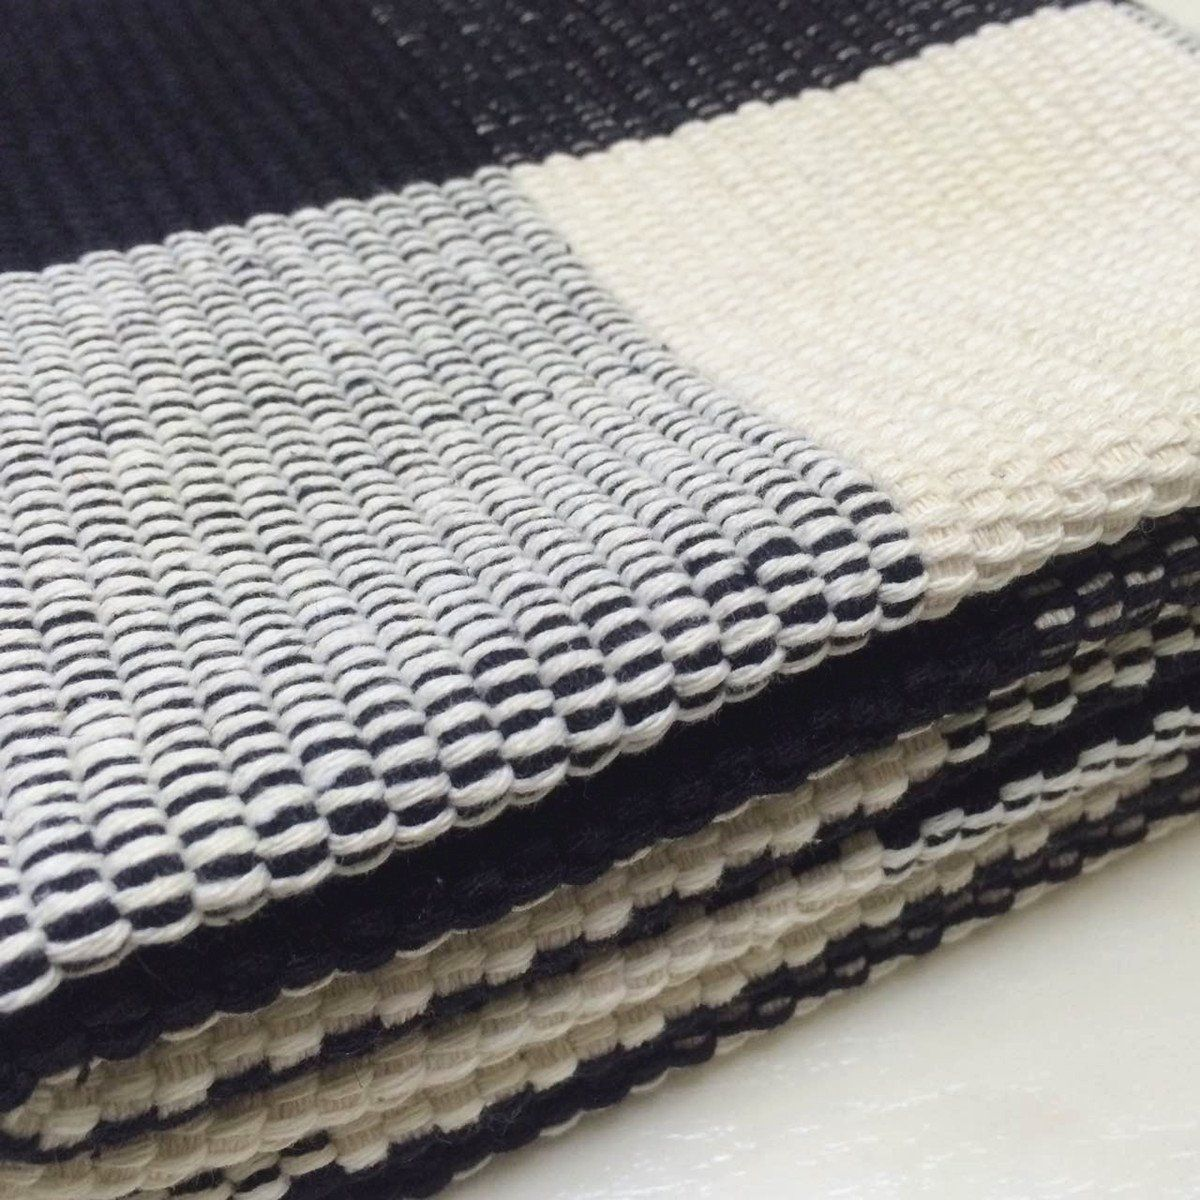 Ukeler Black And White Plaid Rugs Cotton Handwoven Checkered